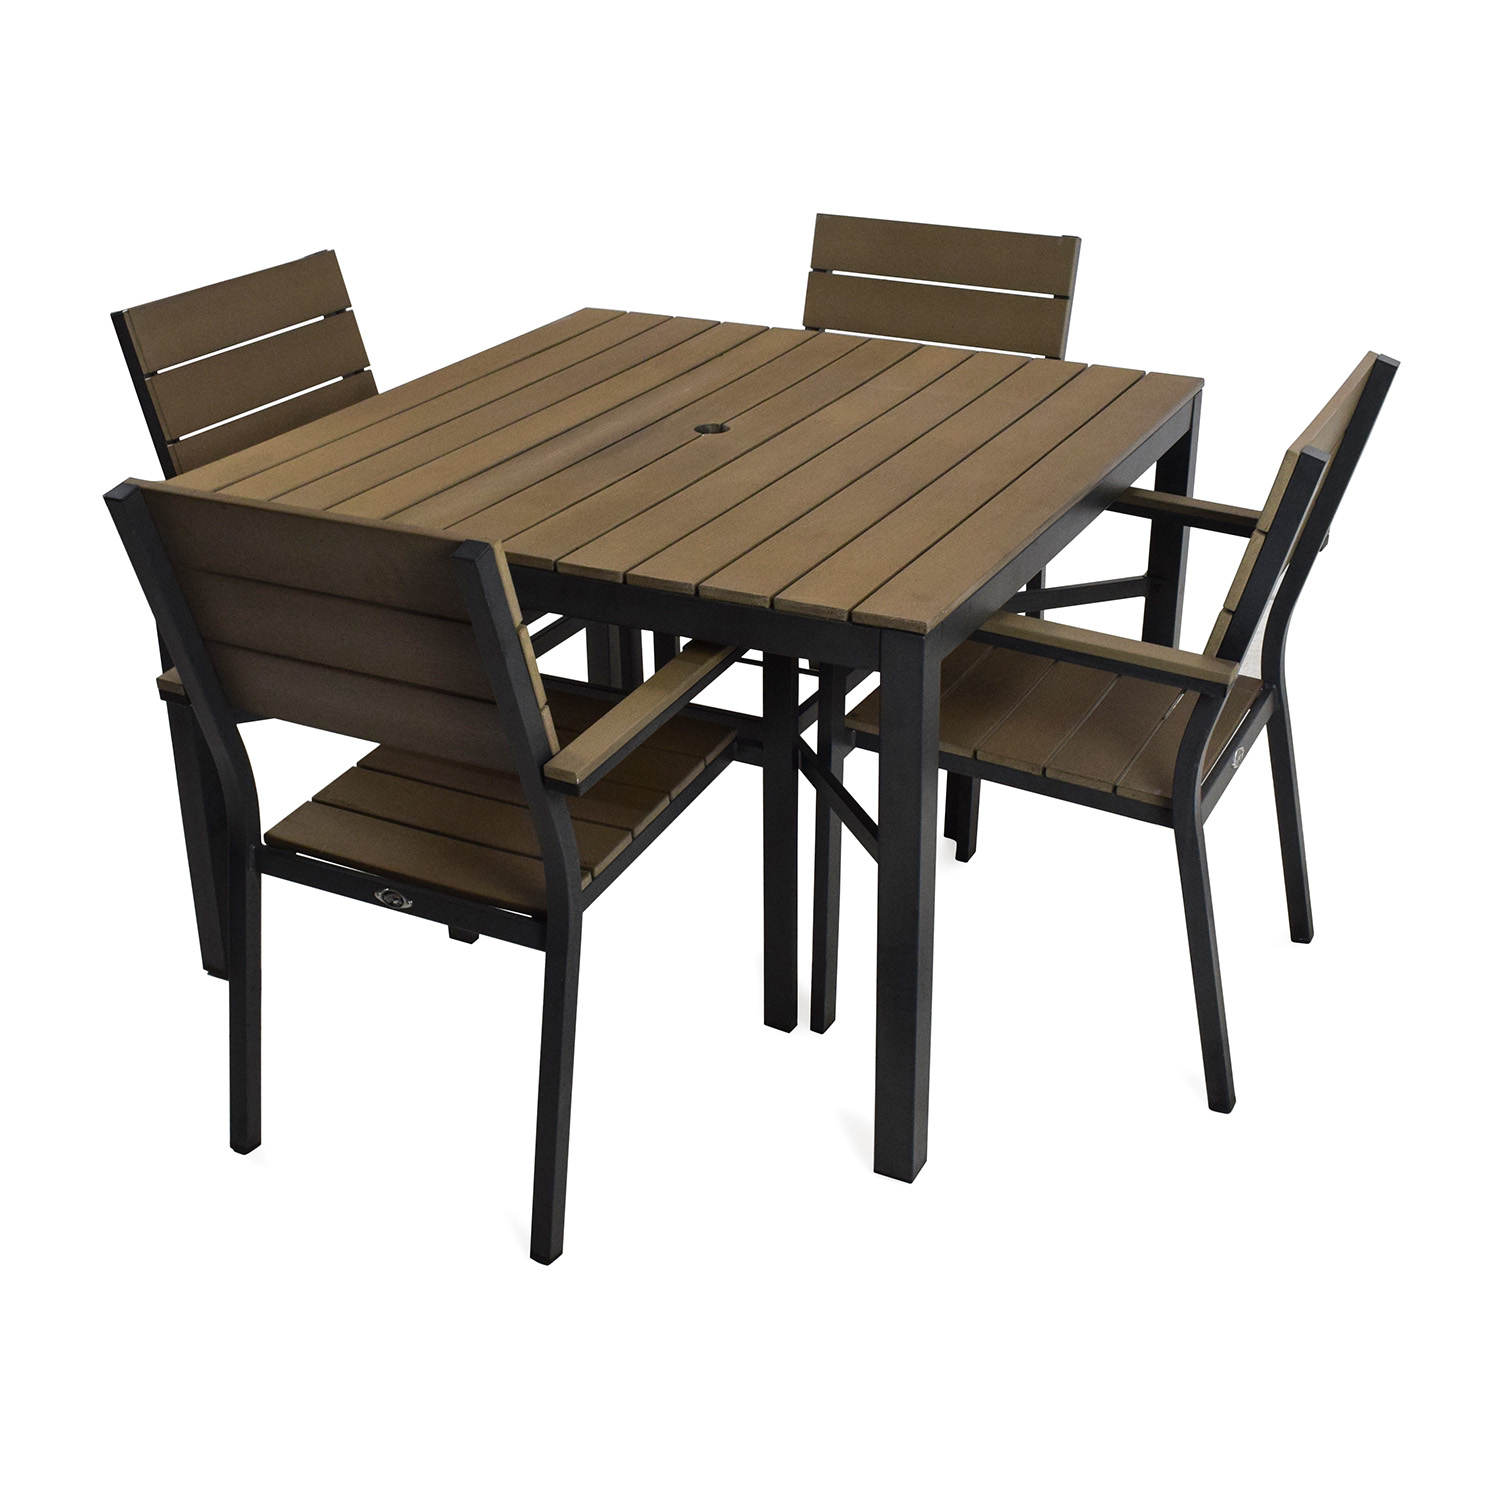 OFF Home Depot Hampton Bay Northridge 5 Piece Patio Dining